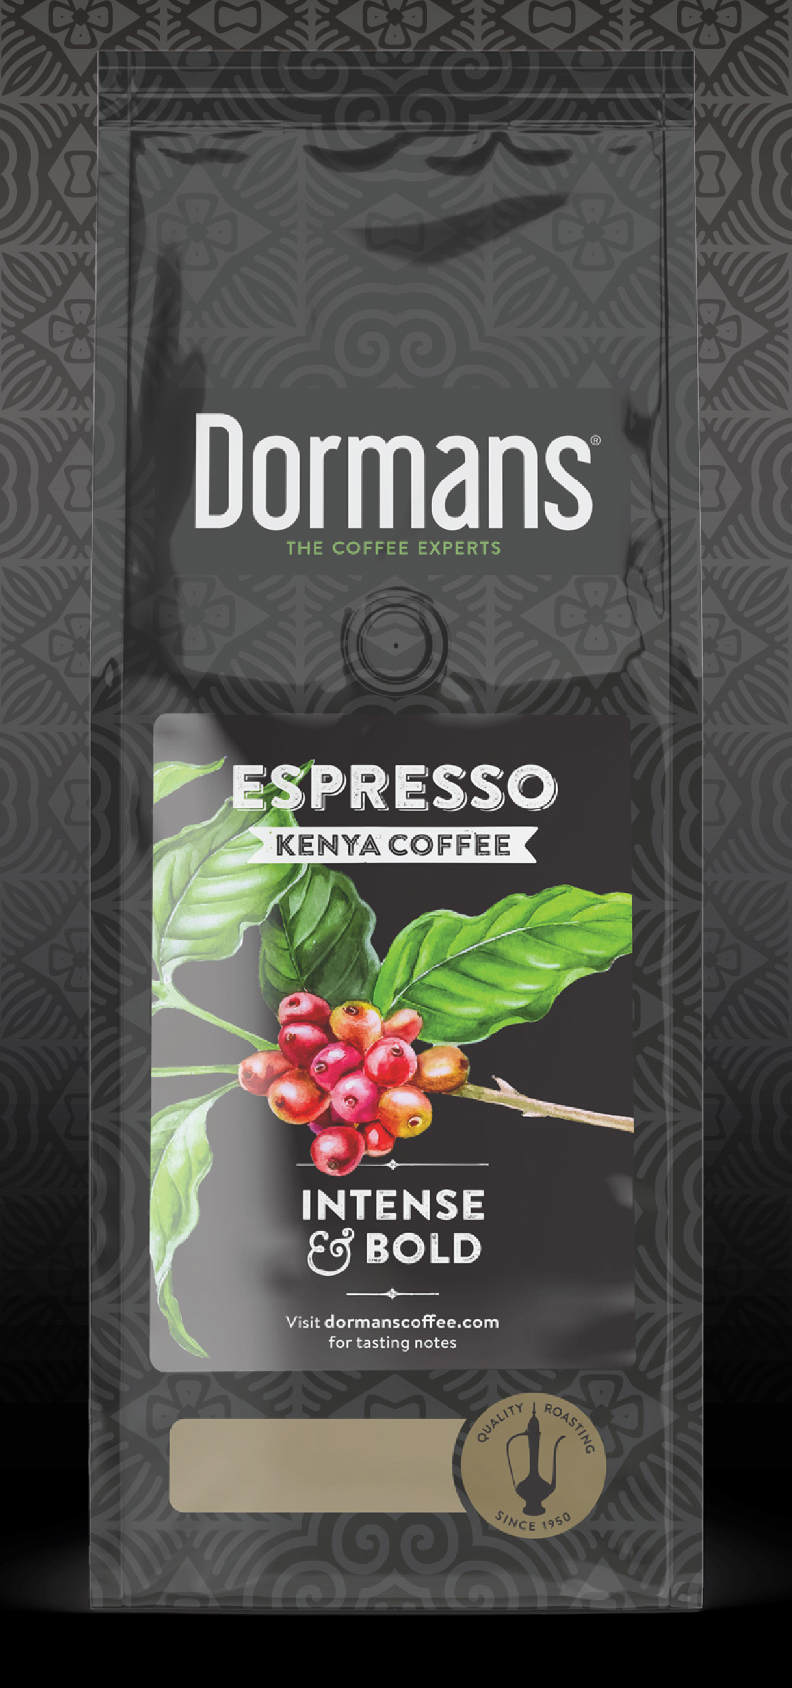 OUR STORY - Dormans was established in 1950 as Kenya's first coffee roastery. The founders, Charles and Ellen Dorman wanted to bring the coffee drinking experience closer to home. Until then, coffee from the region had only been exported in its raw or green form. Sadly, Charles died a premature death in 1960 but Ellen carried on the business determined to fulfill his dream.In her quest to provide a delightful coffee drinking experience to every consumer, Ellen creatively developed unique coffee blend formulations to meet the varied taste profiles of the different market segments. It was this passion and commitment that earned her the nickname 'The grand old dame of coffee'. Many of her blend formulations remain popular to this day.In 1986 Jeremy Block, in partnership with a UK multinational, purchased the business from a retiring Ellen.Over the years, Dormans has pioneered many initiatives to spur local consumption and today, is the most trusted coffee brand in the East African market.MILESTONESYear 2002Dormans set up Africa's first Coffee Training School, Nairobi School of Coffee.Dormans has connected many of the graduates to their hospitality clients, thus contributing to the employment of thousands of youth. The NSoC certificate is well sought-after by employers seeking to recruit qualified Baristas at their restaurants and coffee shops.Year 2003Dormans pioneered the introduction of the Kenya National Barista Championships in Nairobi. The event has grown in popularity over the years.The event has helped enhance awareness of a Barista as a professional coffee maker.Winners compete at the World Barista Championships, an event organized by the Specialty Coffee Association of Europe and the Specialty Coffee Association of America.Year 2004Dormans opened its first Coffee shop - a chain of shops followed.Year 2005Dormans introduced 'Coffee on the Go' serving delightful coffee from a Mobile Coffee Cart, the first ever in the region.Year 2013Dormans sold the assets of their coffee shops to a Partner who continues to operate a successful chain of coffee shops.